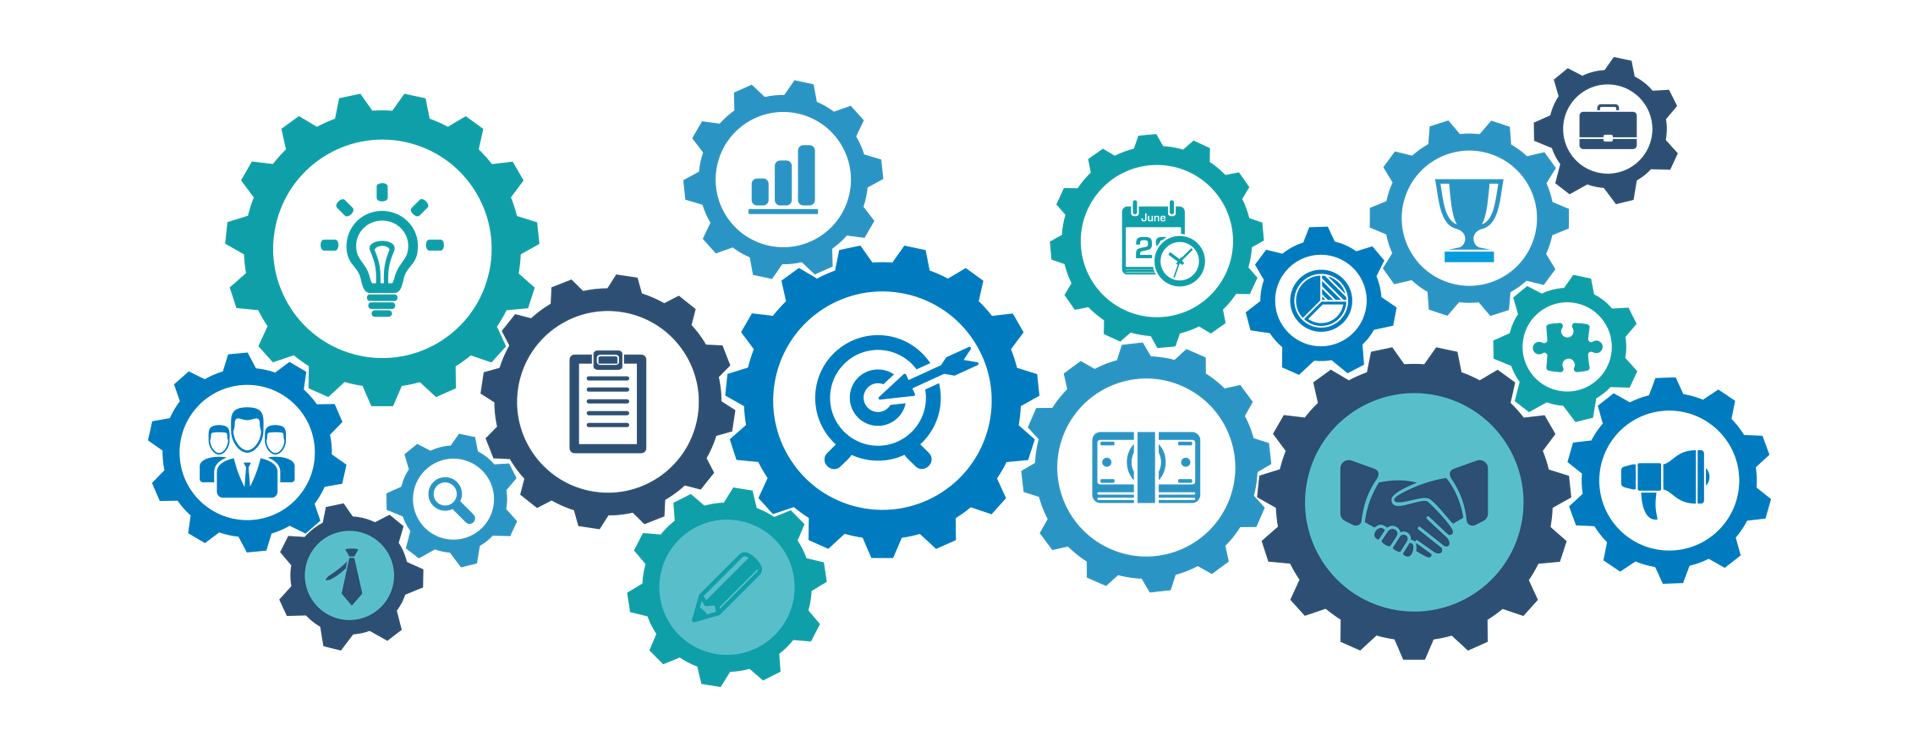 Why Real-time Web Development And Real-time Web Apps Are Vital For Every Business?